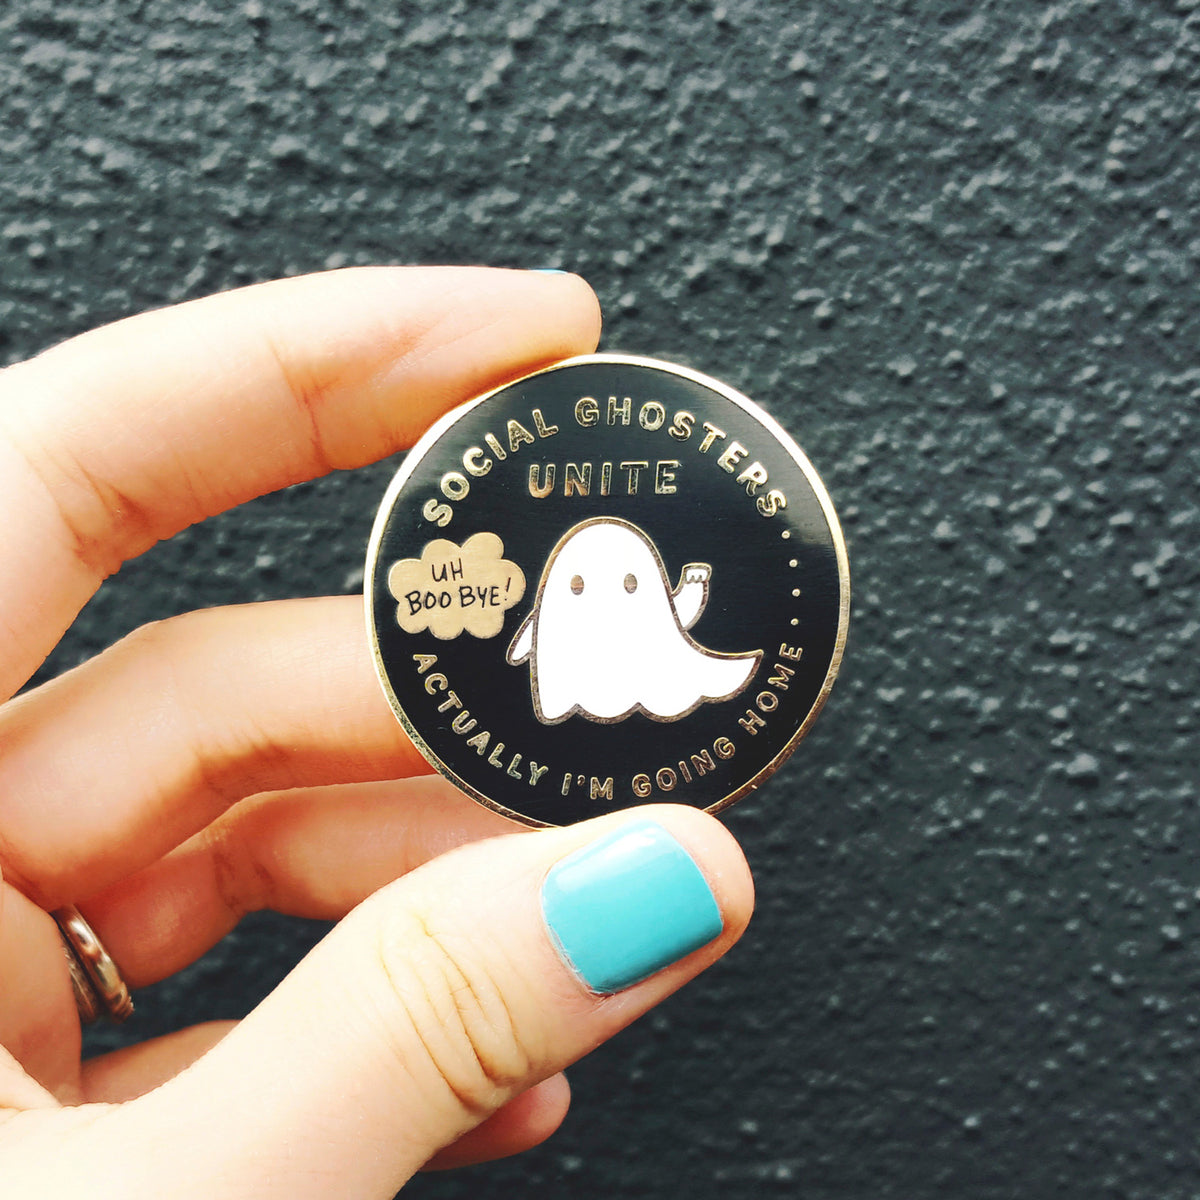 Social Ghosters Unite! Actually I'm Going Home... ~ Gold plated enamel pin of a ghoster's club by My Cat Is People.